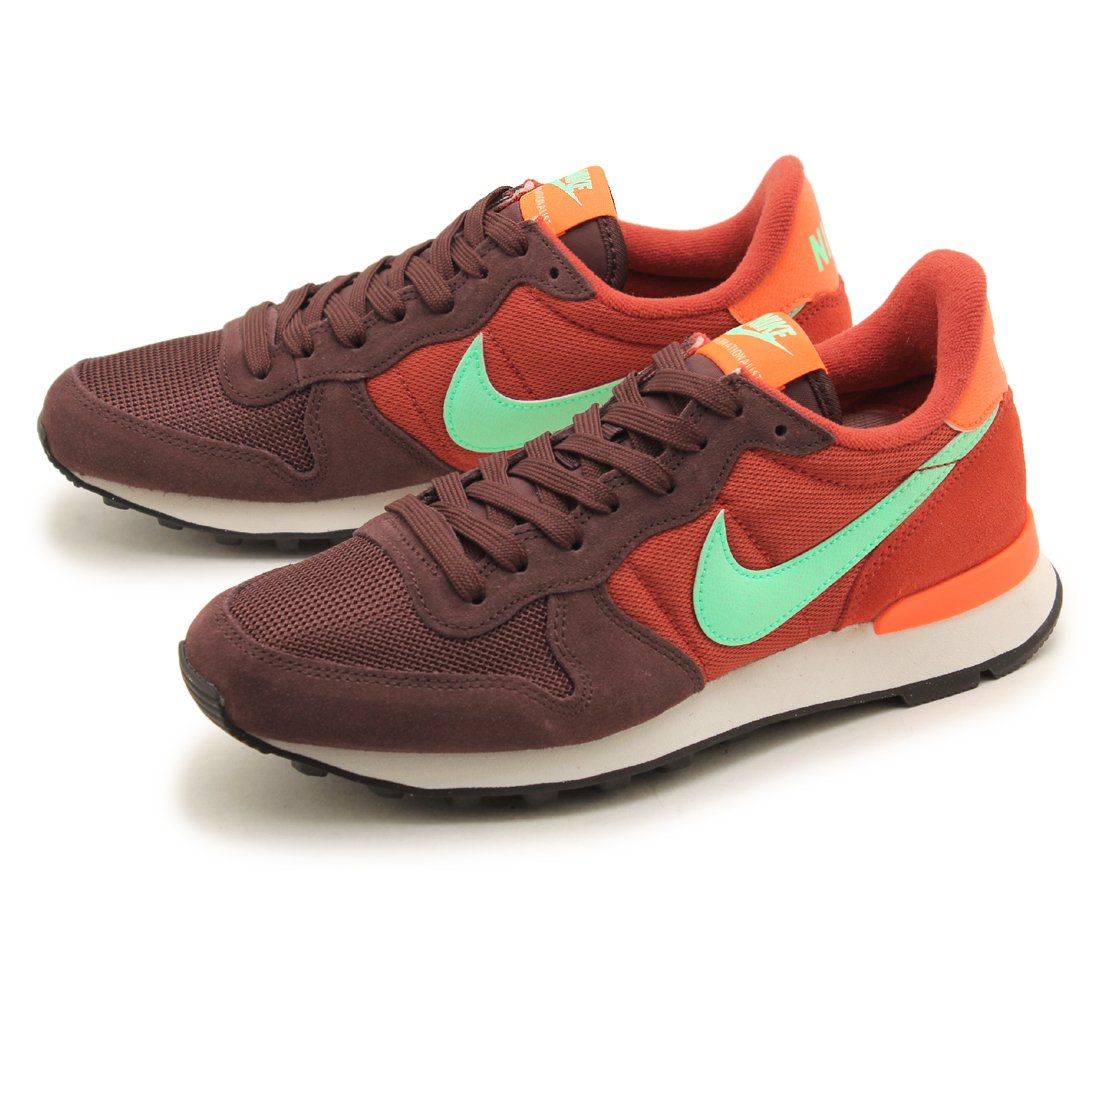 online retailer 2d1b5 2cdb4 Amazon.com  Nike Womens Wmns Internationalist, MAHOGANYGREEN  GLOW-CINNABAR-TOTAL ORANGE, 6 US  Road Running